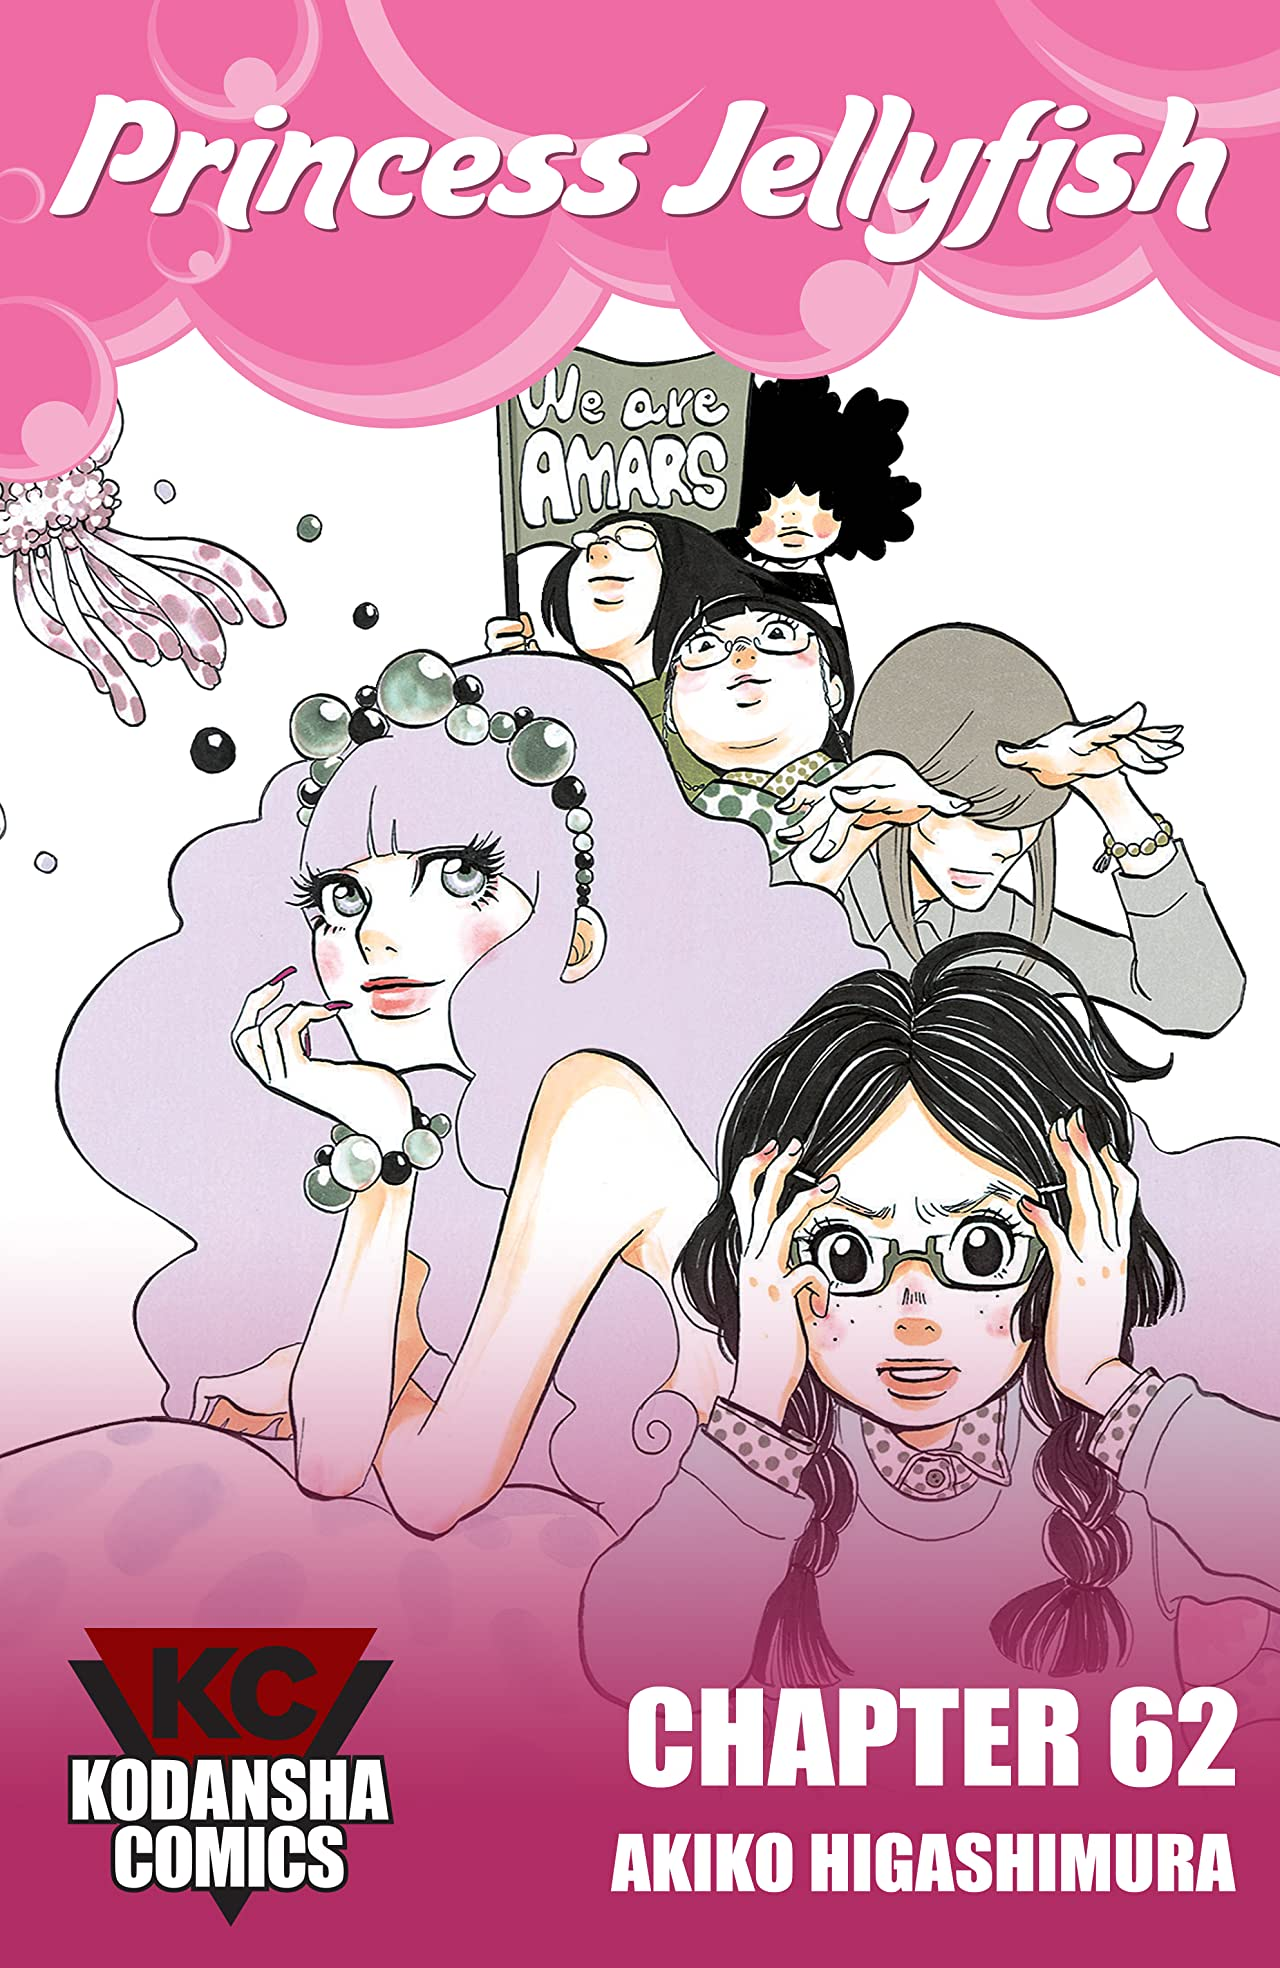 Princess Jellyfish #62